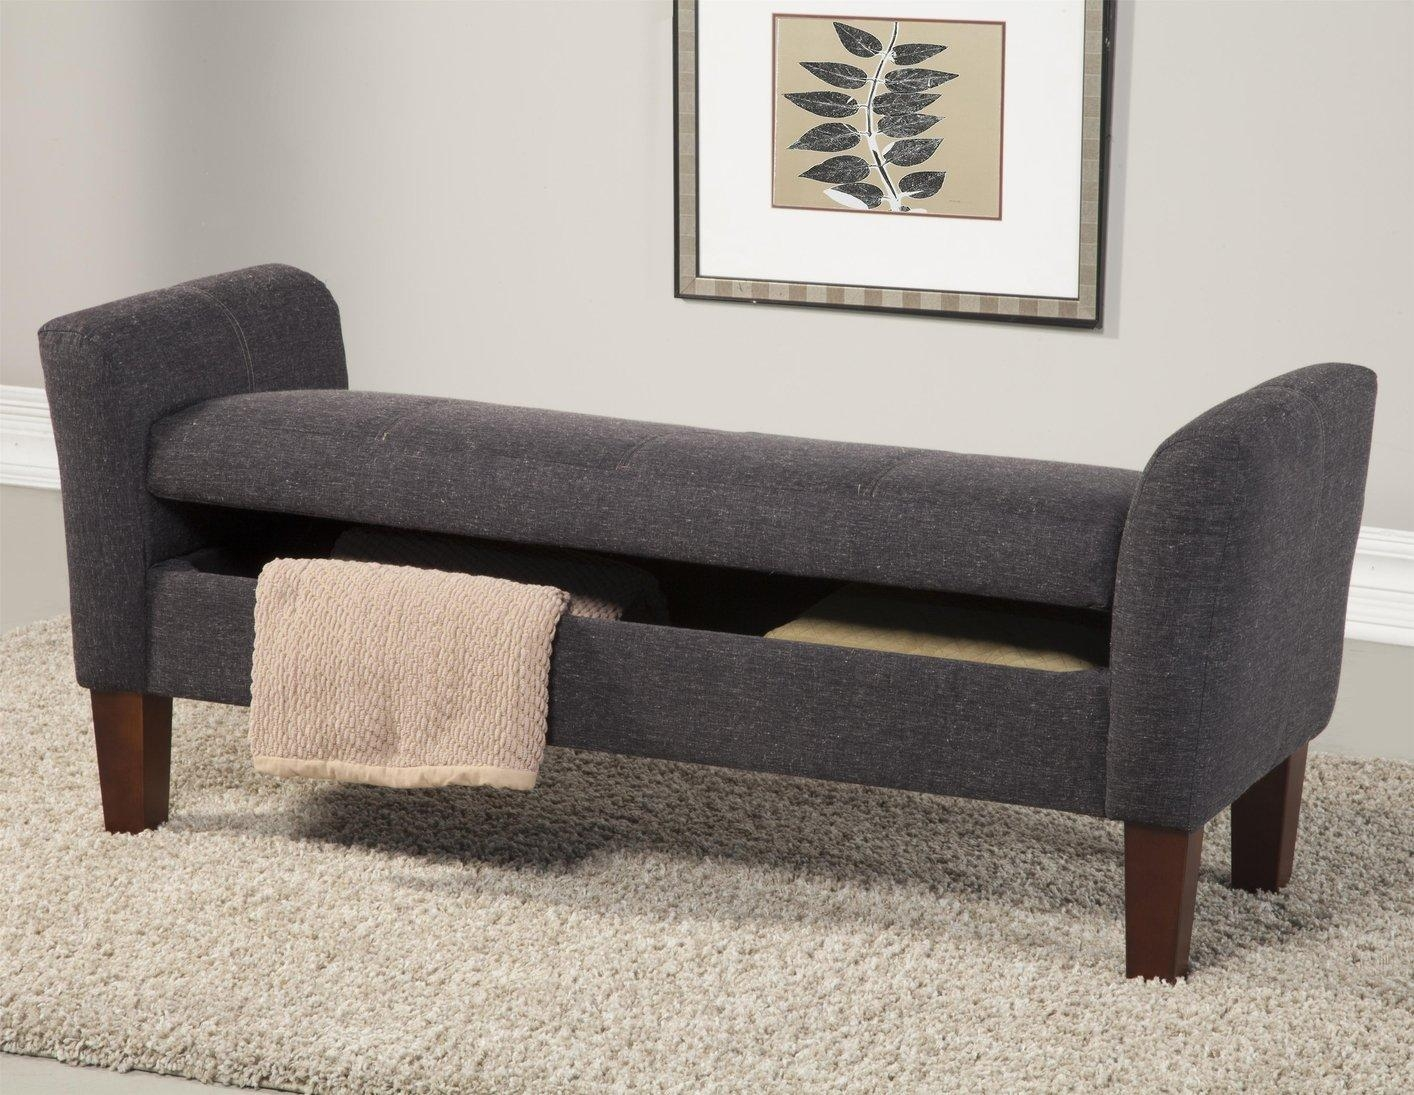 Bedroom Sofa Bench | Sofa Gallery | Kengire With Regard To Bedroom Bench Sofas (Image 6 of 20)